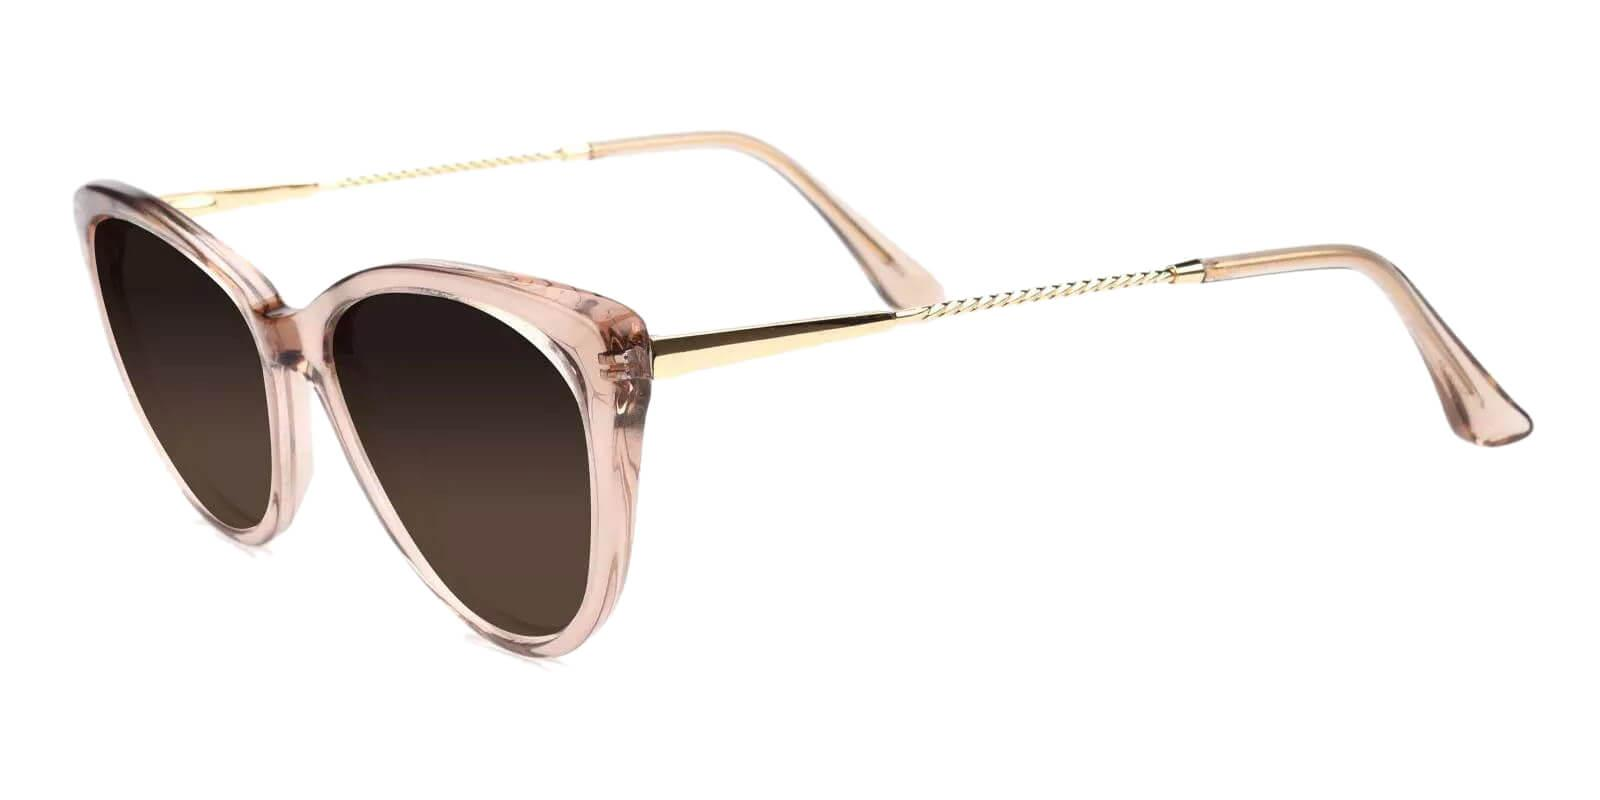 Benson Pink Combination Fashion , SpringHinges , Sunglasses , UniversalBridgeFit Frames from ABBE Glasses